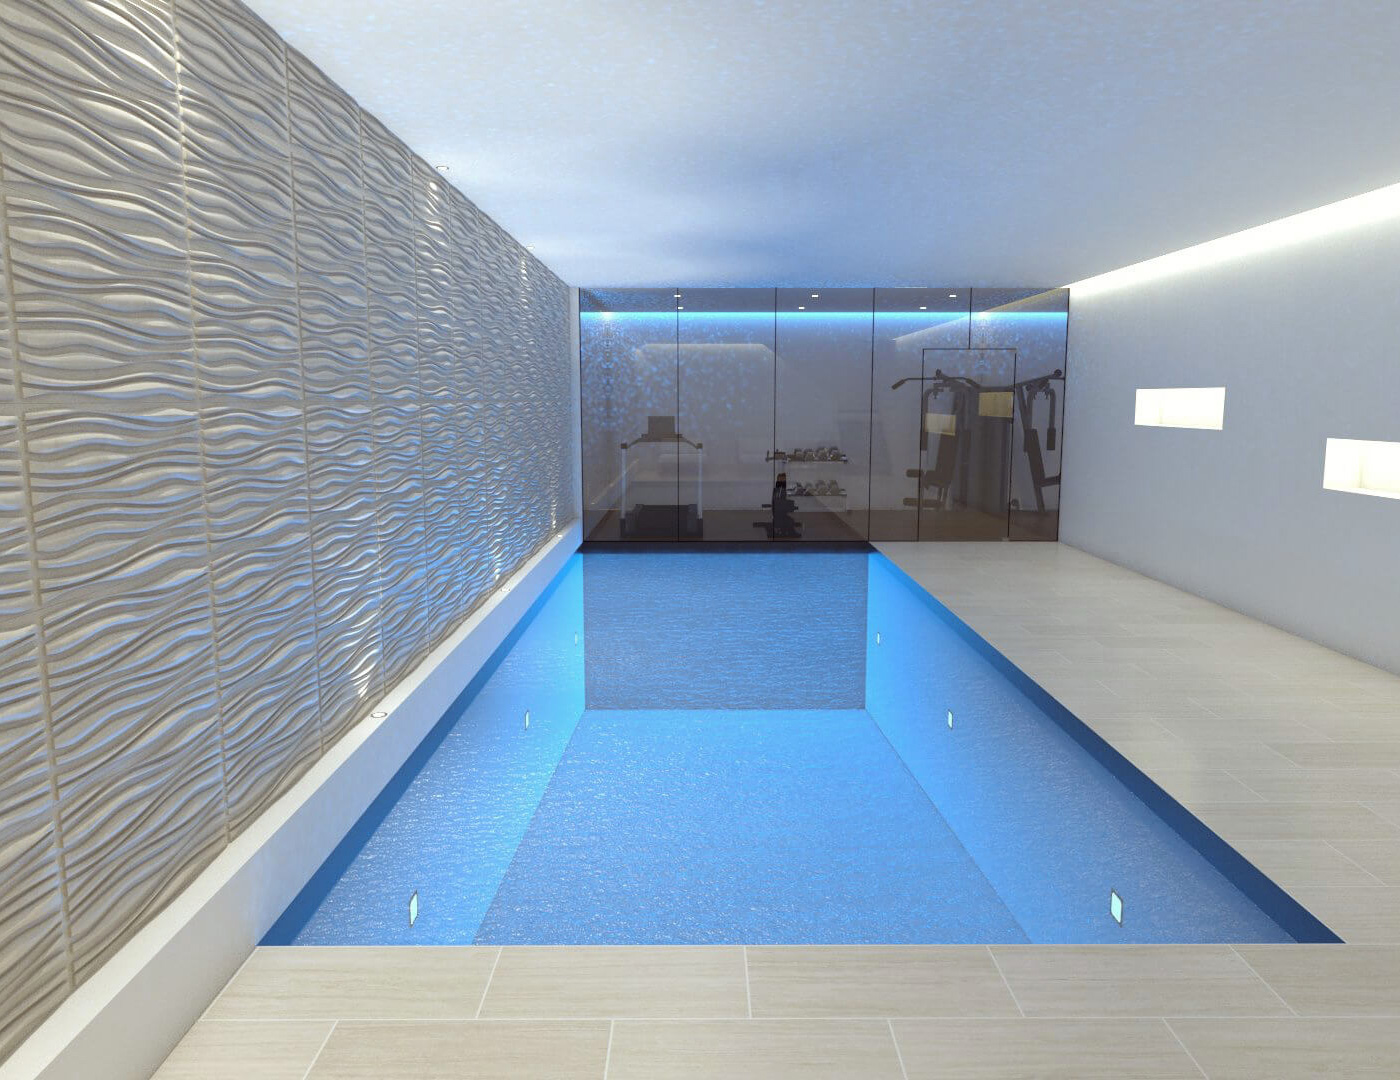 Basement Pool. Indoor Basement Swimming Pools, Spas \u0026 Steam Rooms Pool  Oxford And